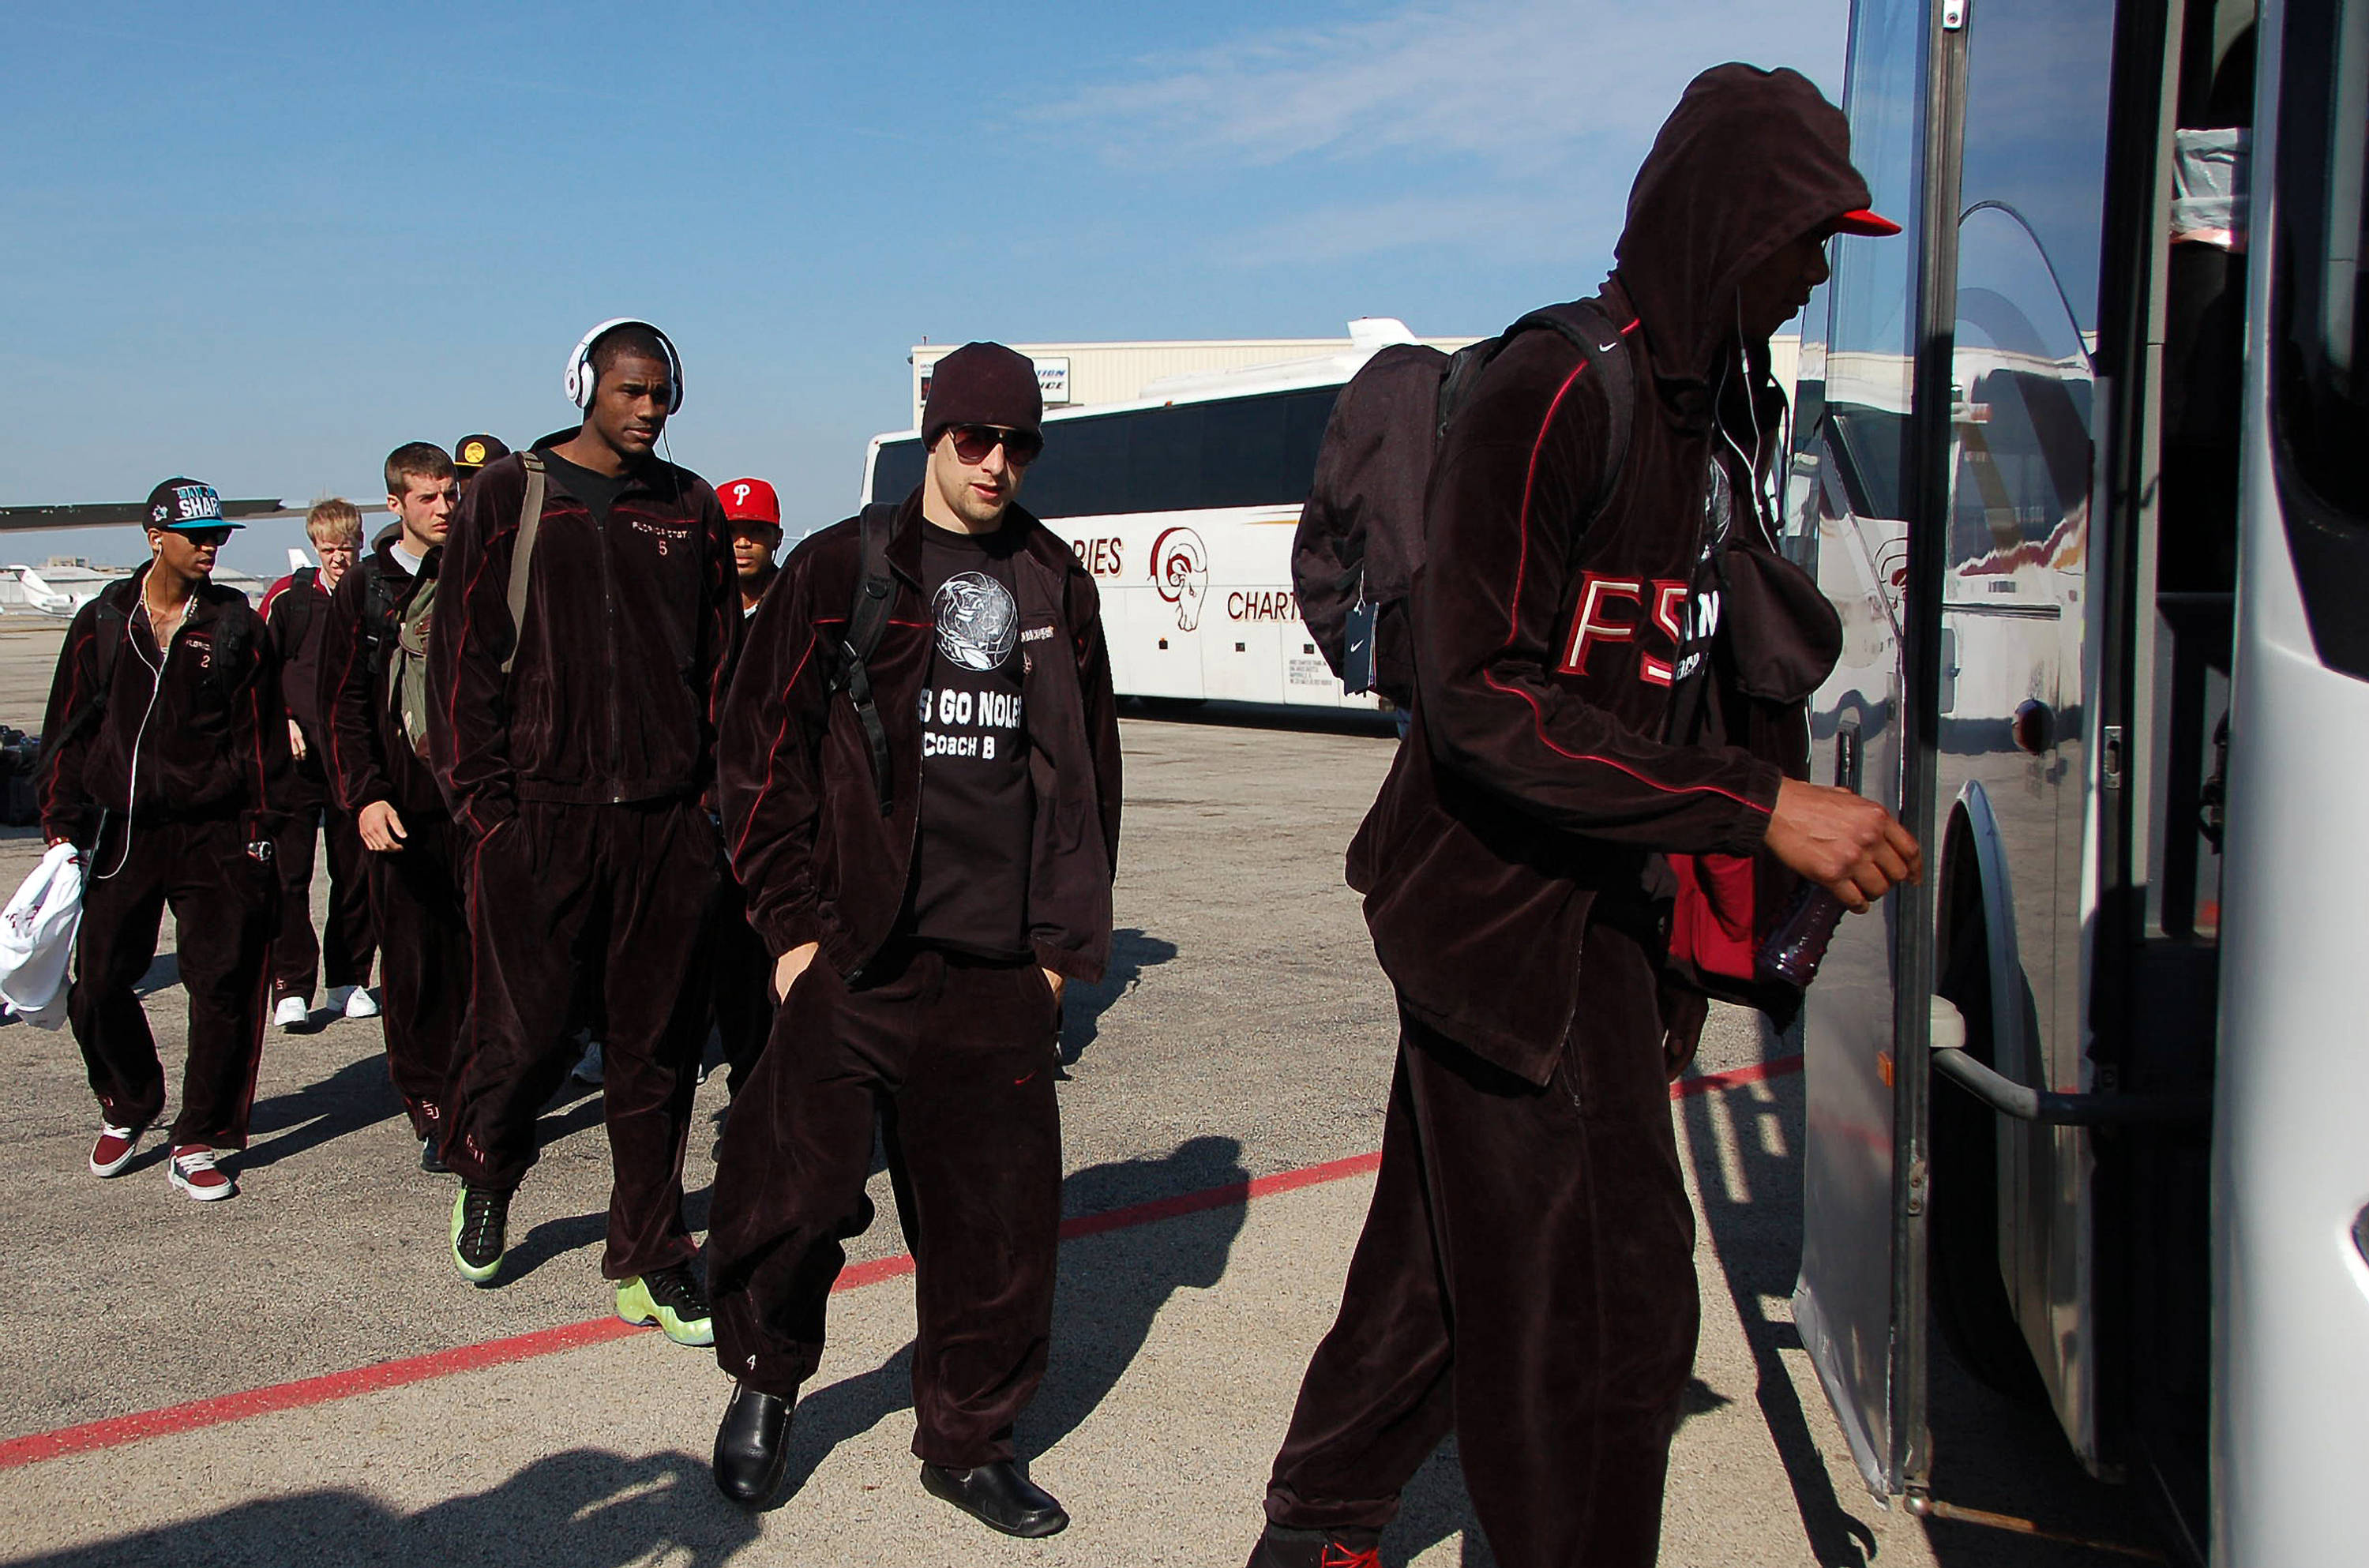 Seminole players load the bus at Midway Airport in Chicago.